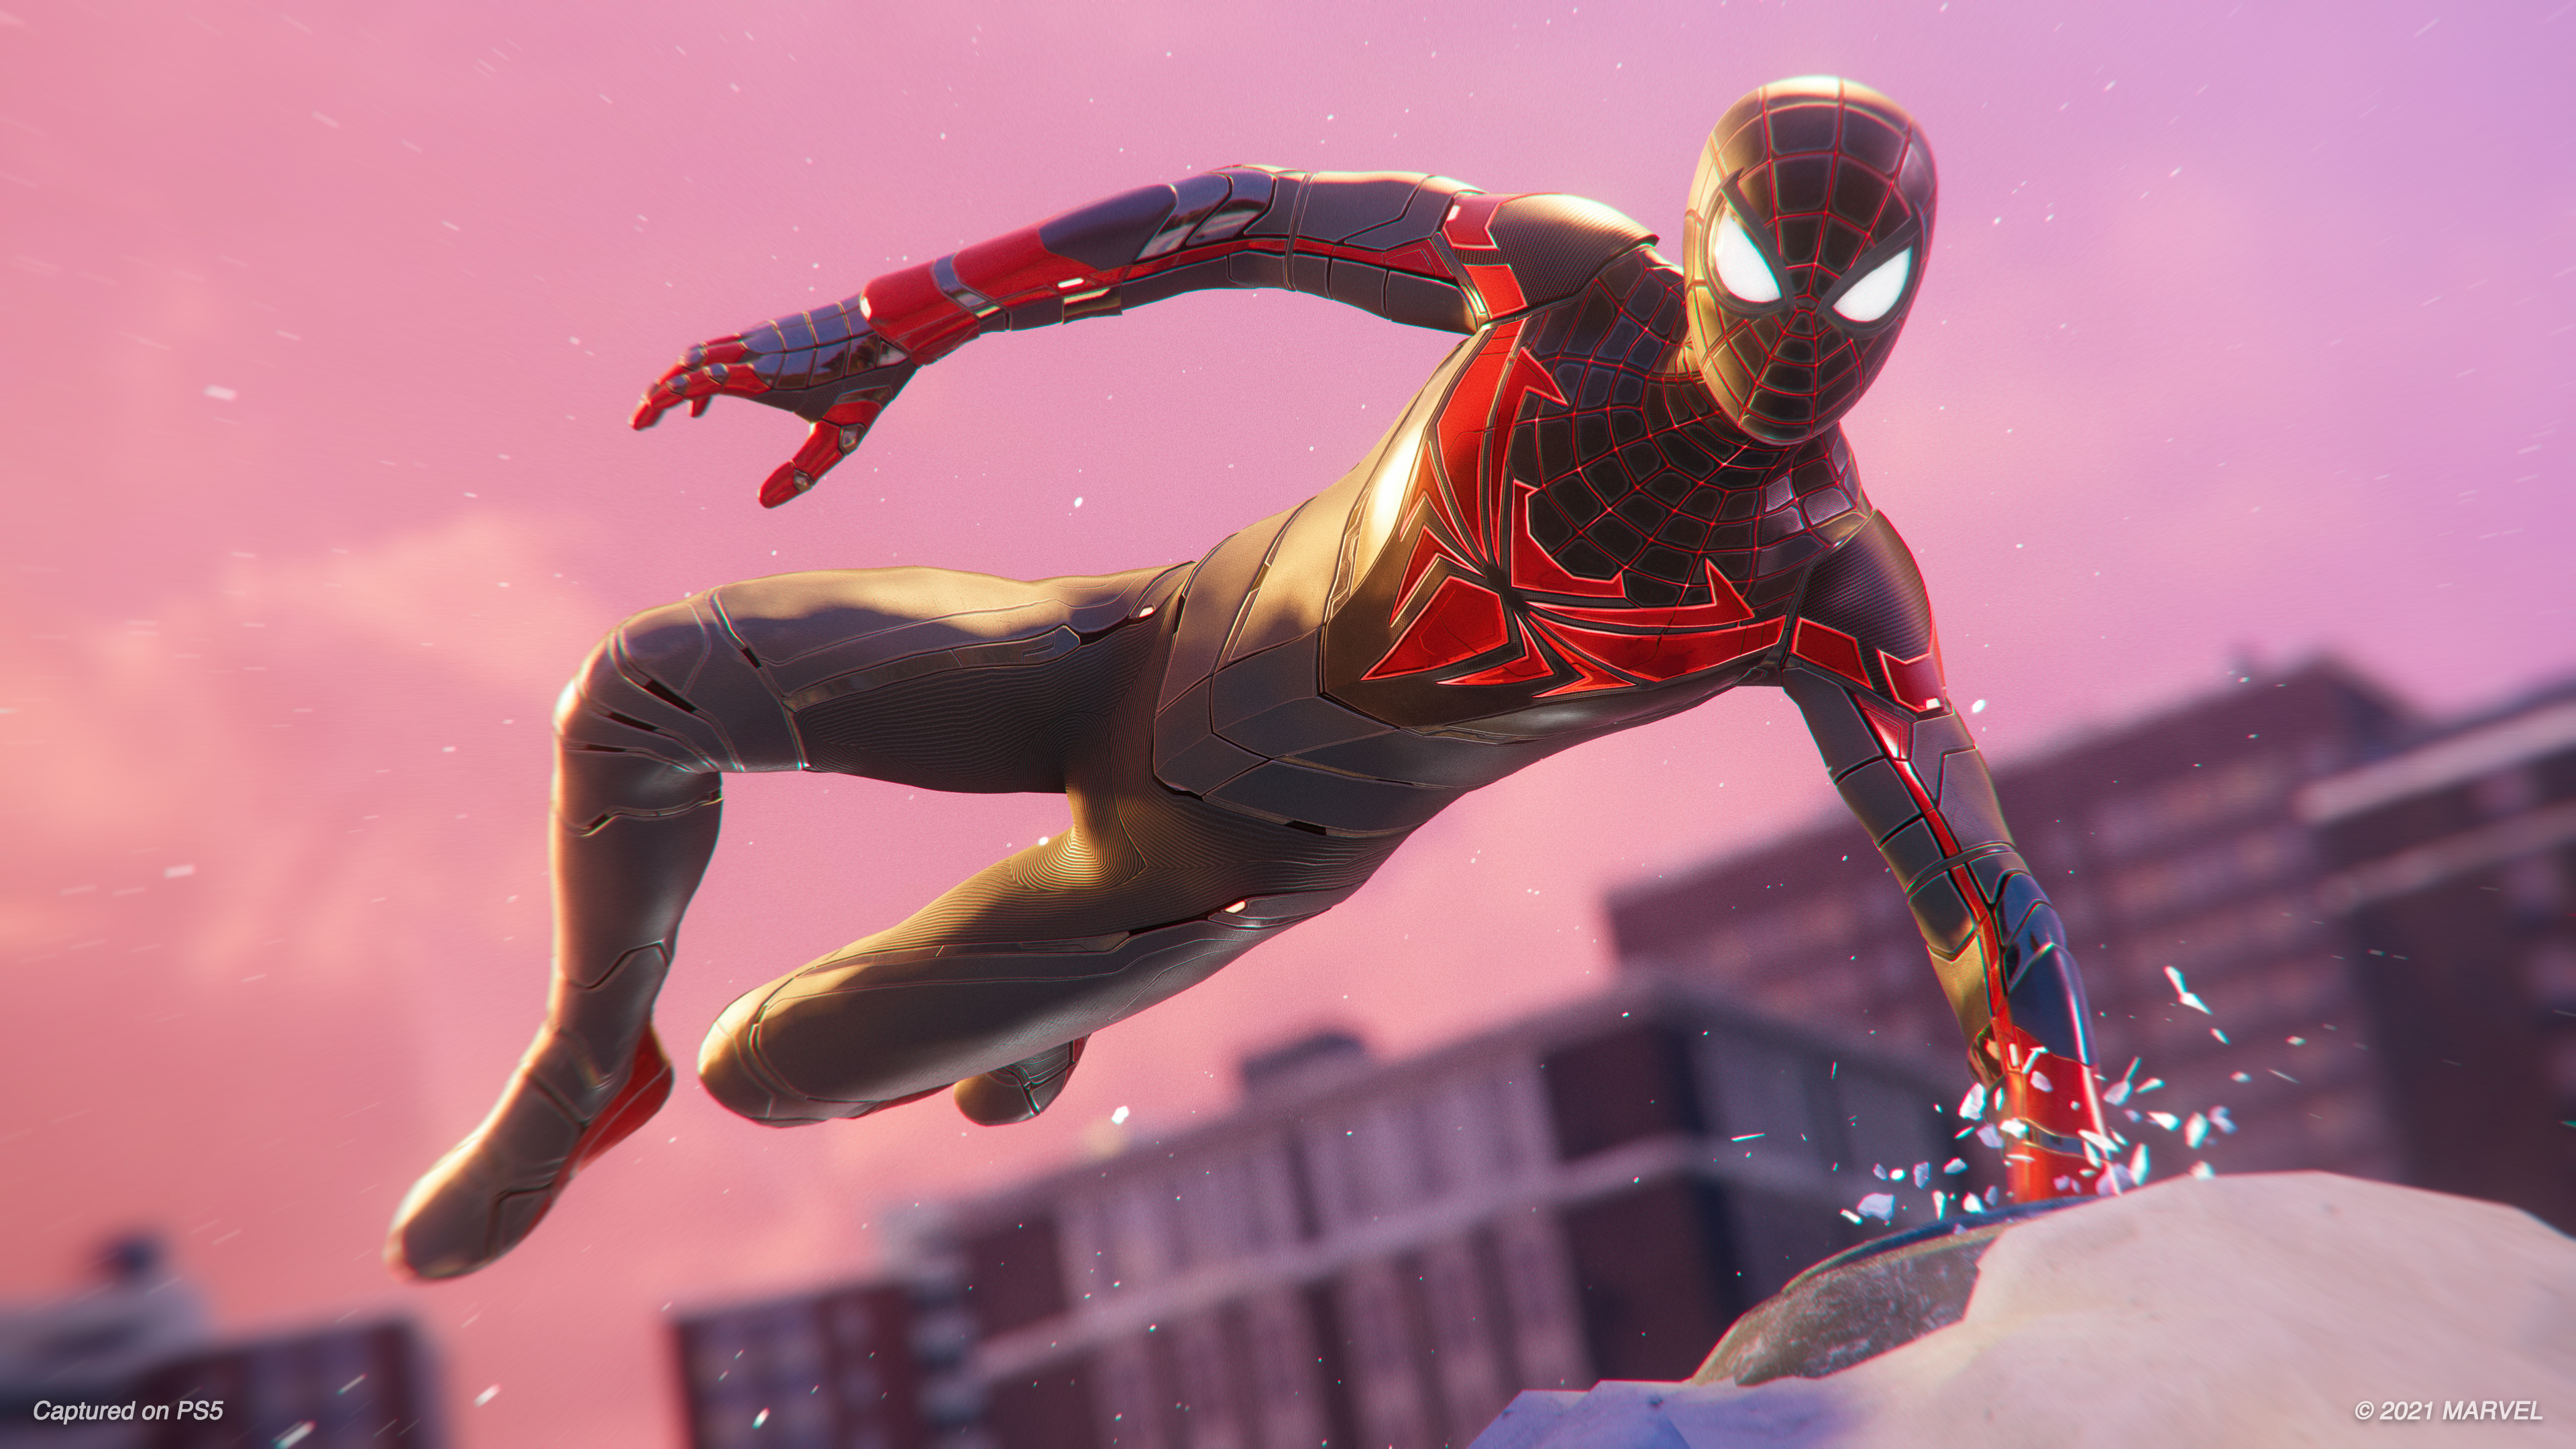 Spider-Man: Miles Morales update adds new suit and realistic muscle deformation - VG247